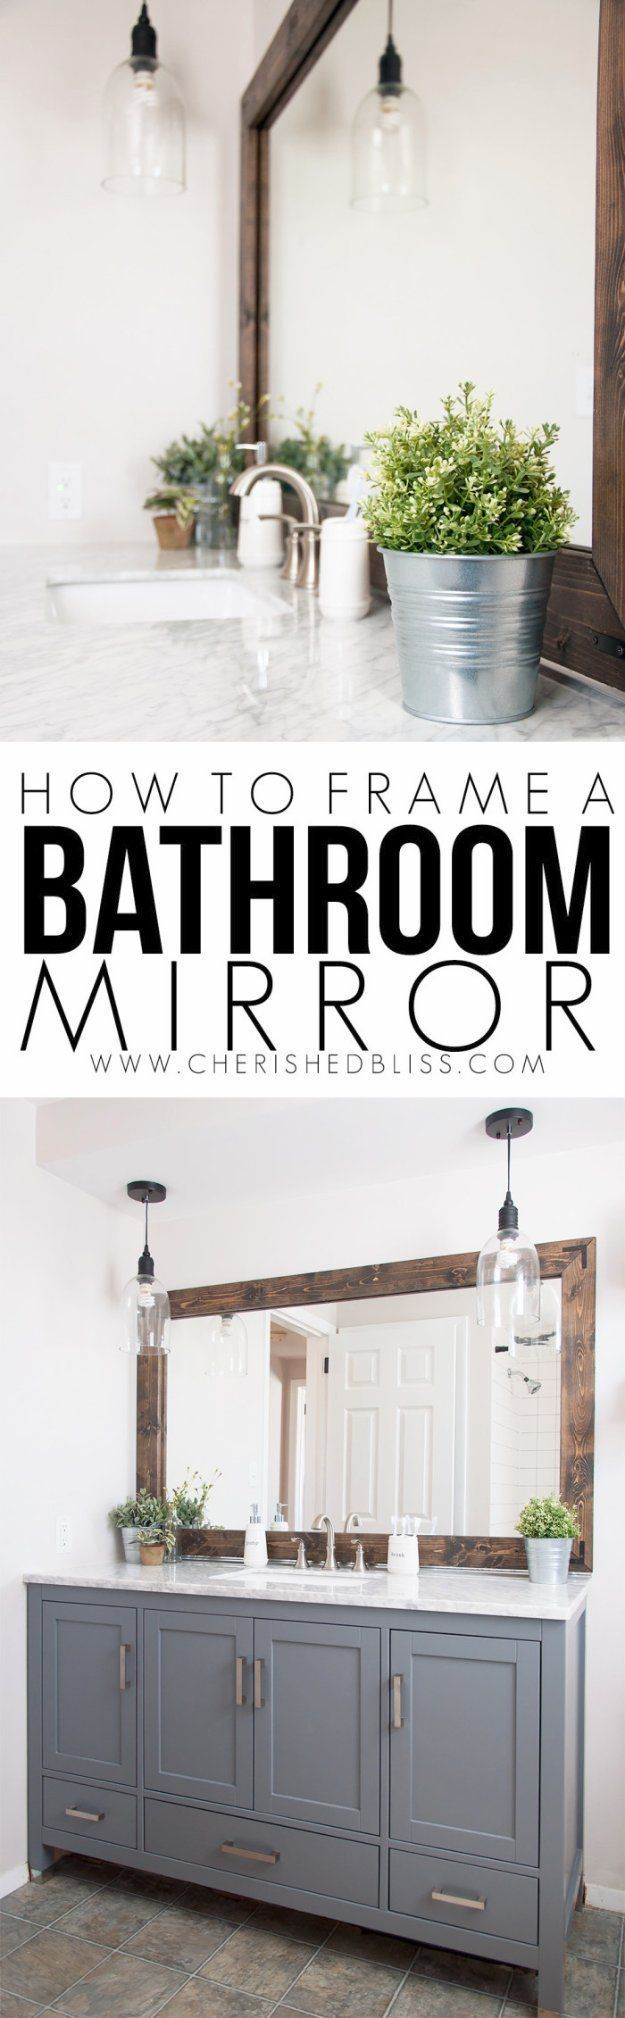 Best 25+ Diy Bathroom Decor Ideas On Pinterest | Bathroom Storage Diy, Diy  Bathroom Ideas And Small Table Ideas